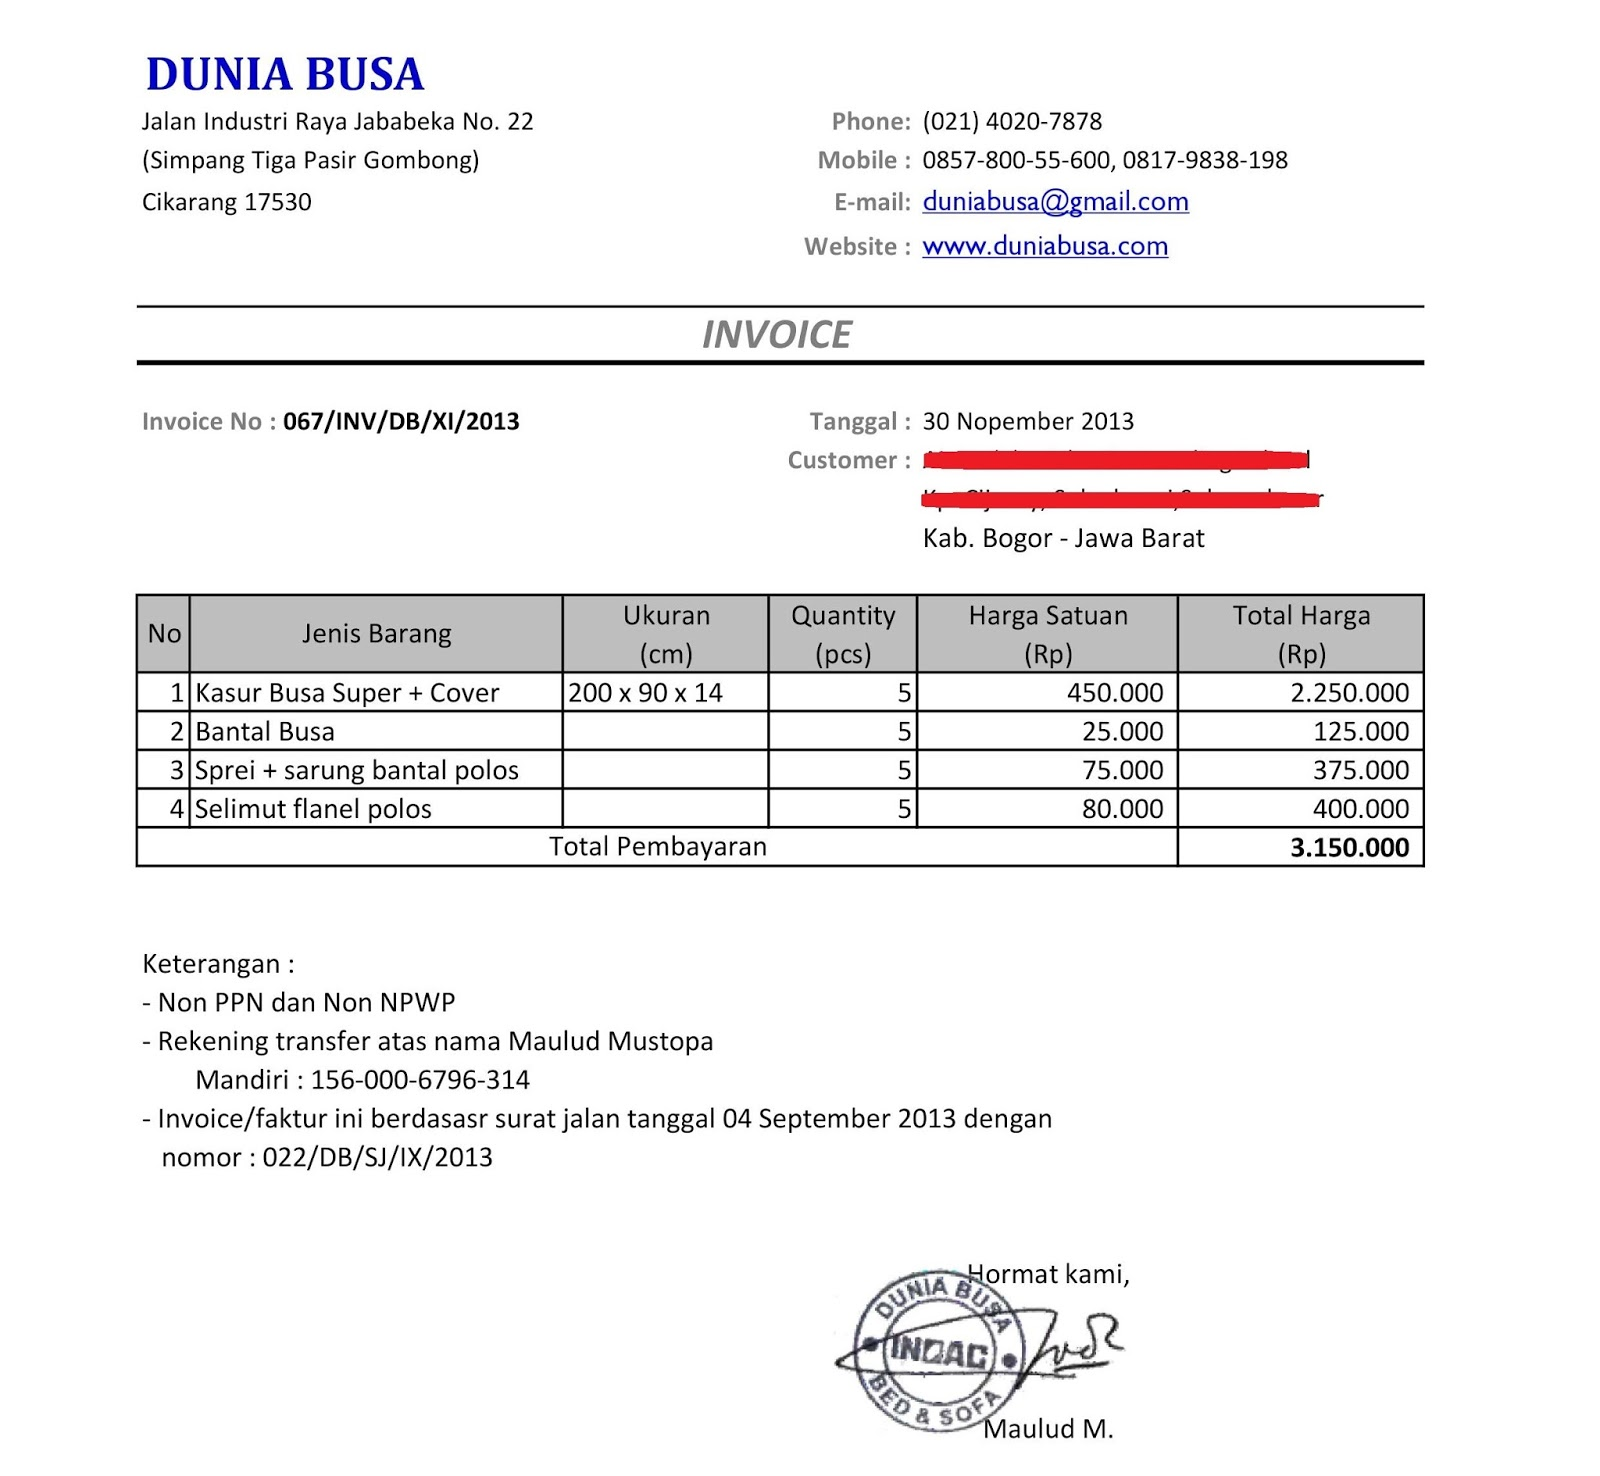 Centralasianshepherdus  Sweet Free Invoice Online  Create Invoice Online  Invoice Template  With Excellent Contoh Format Invoice Atau Surat Tagihan  Brankas Arsip  Free Invoice Online With Appealing Format Of Export Invoice Also How To Make Invoices In Word In Addition Invoice For Excel And Edi Invoice Processing As Well As  Chevy Silverado Invoice Price Additionally Create Your Own Invoice Template From Sklepco With Centralasianshepherdus  Excellent Free Invoice Online  Create Invoice Online  Invoice Template  With Appealing Contoh Format Invoice Atau Surat Tagihan  Brankas Arsip  Free Invoice Online And Sweet Format Of Export Invoice Also How To Make Invoices In Word In Addition Invoice For Excel From Sklepco